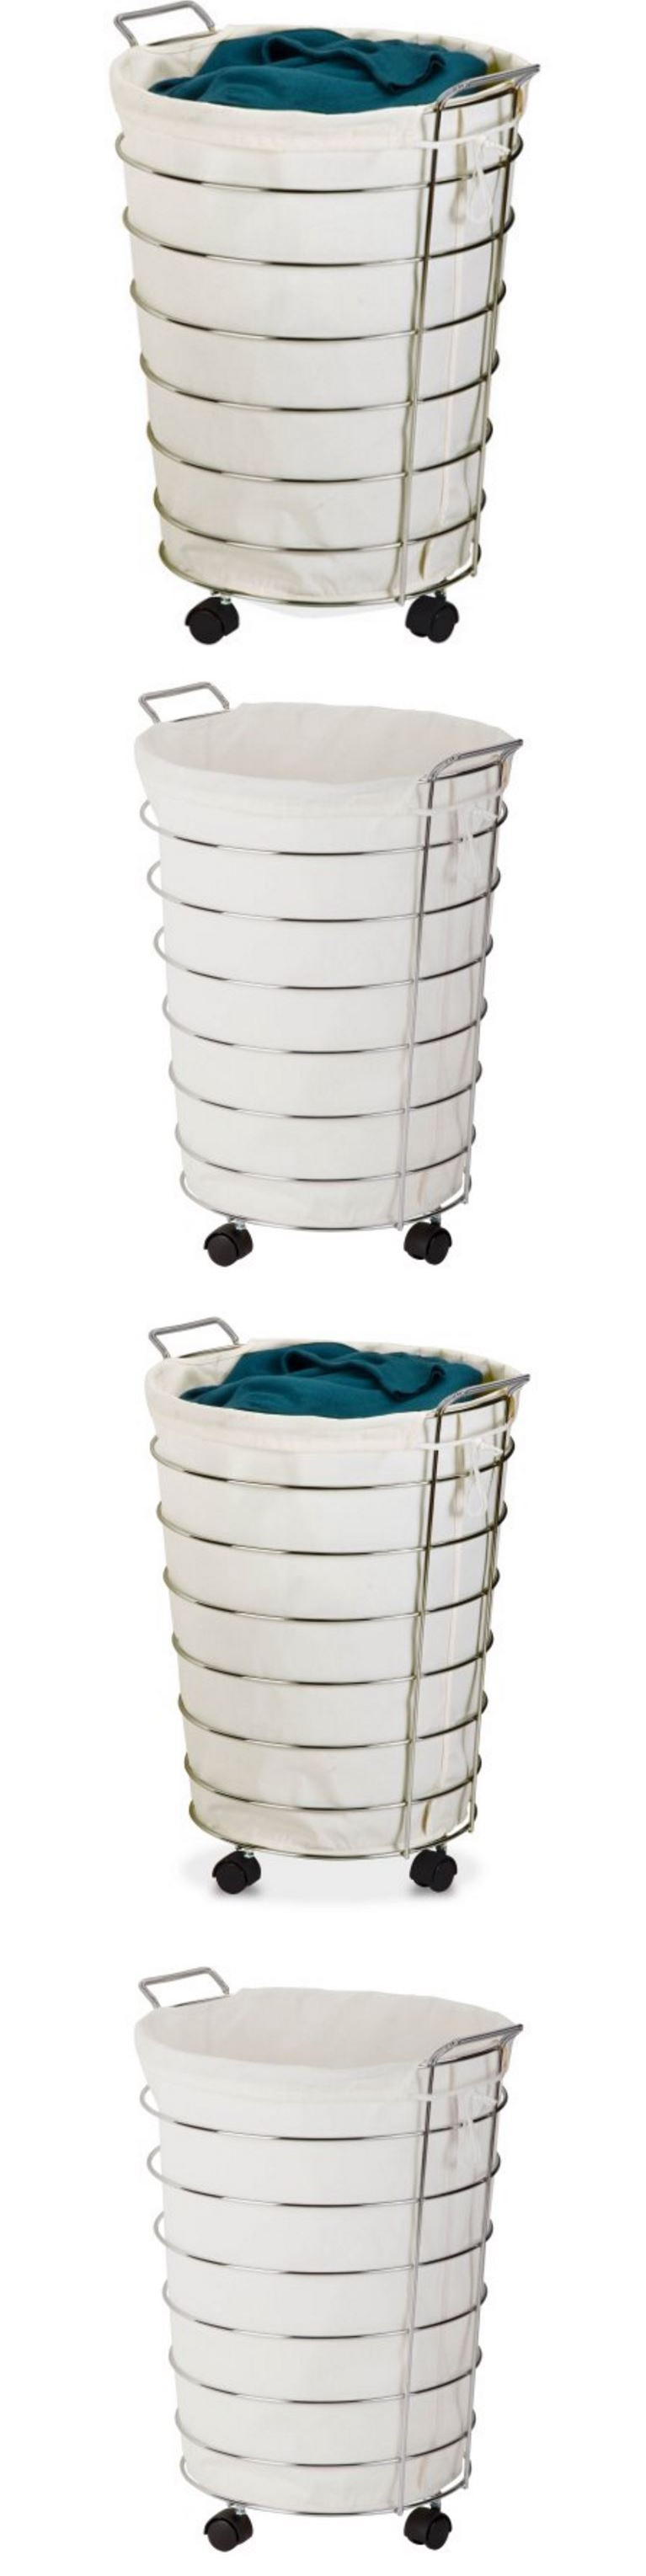 White tilt out clothes storage basket bin bathroom drawer ebay - Hampers 43517 Baby Clothes Hamper Kids Dirty Laundry Wheels Basket Bin Canvas Drawstring Bag